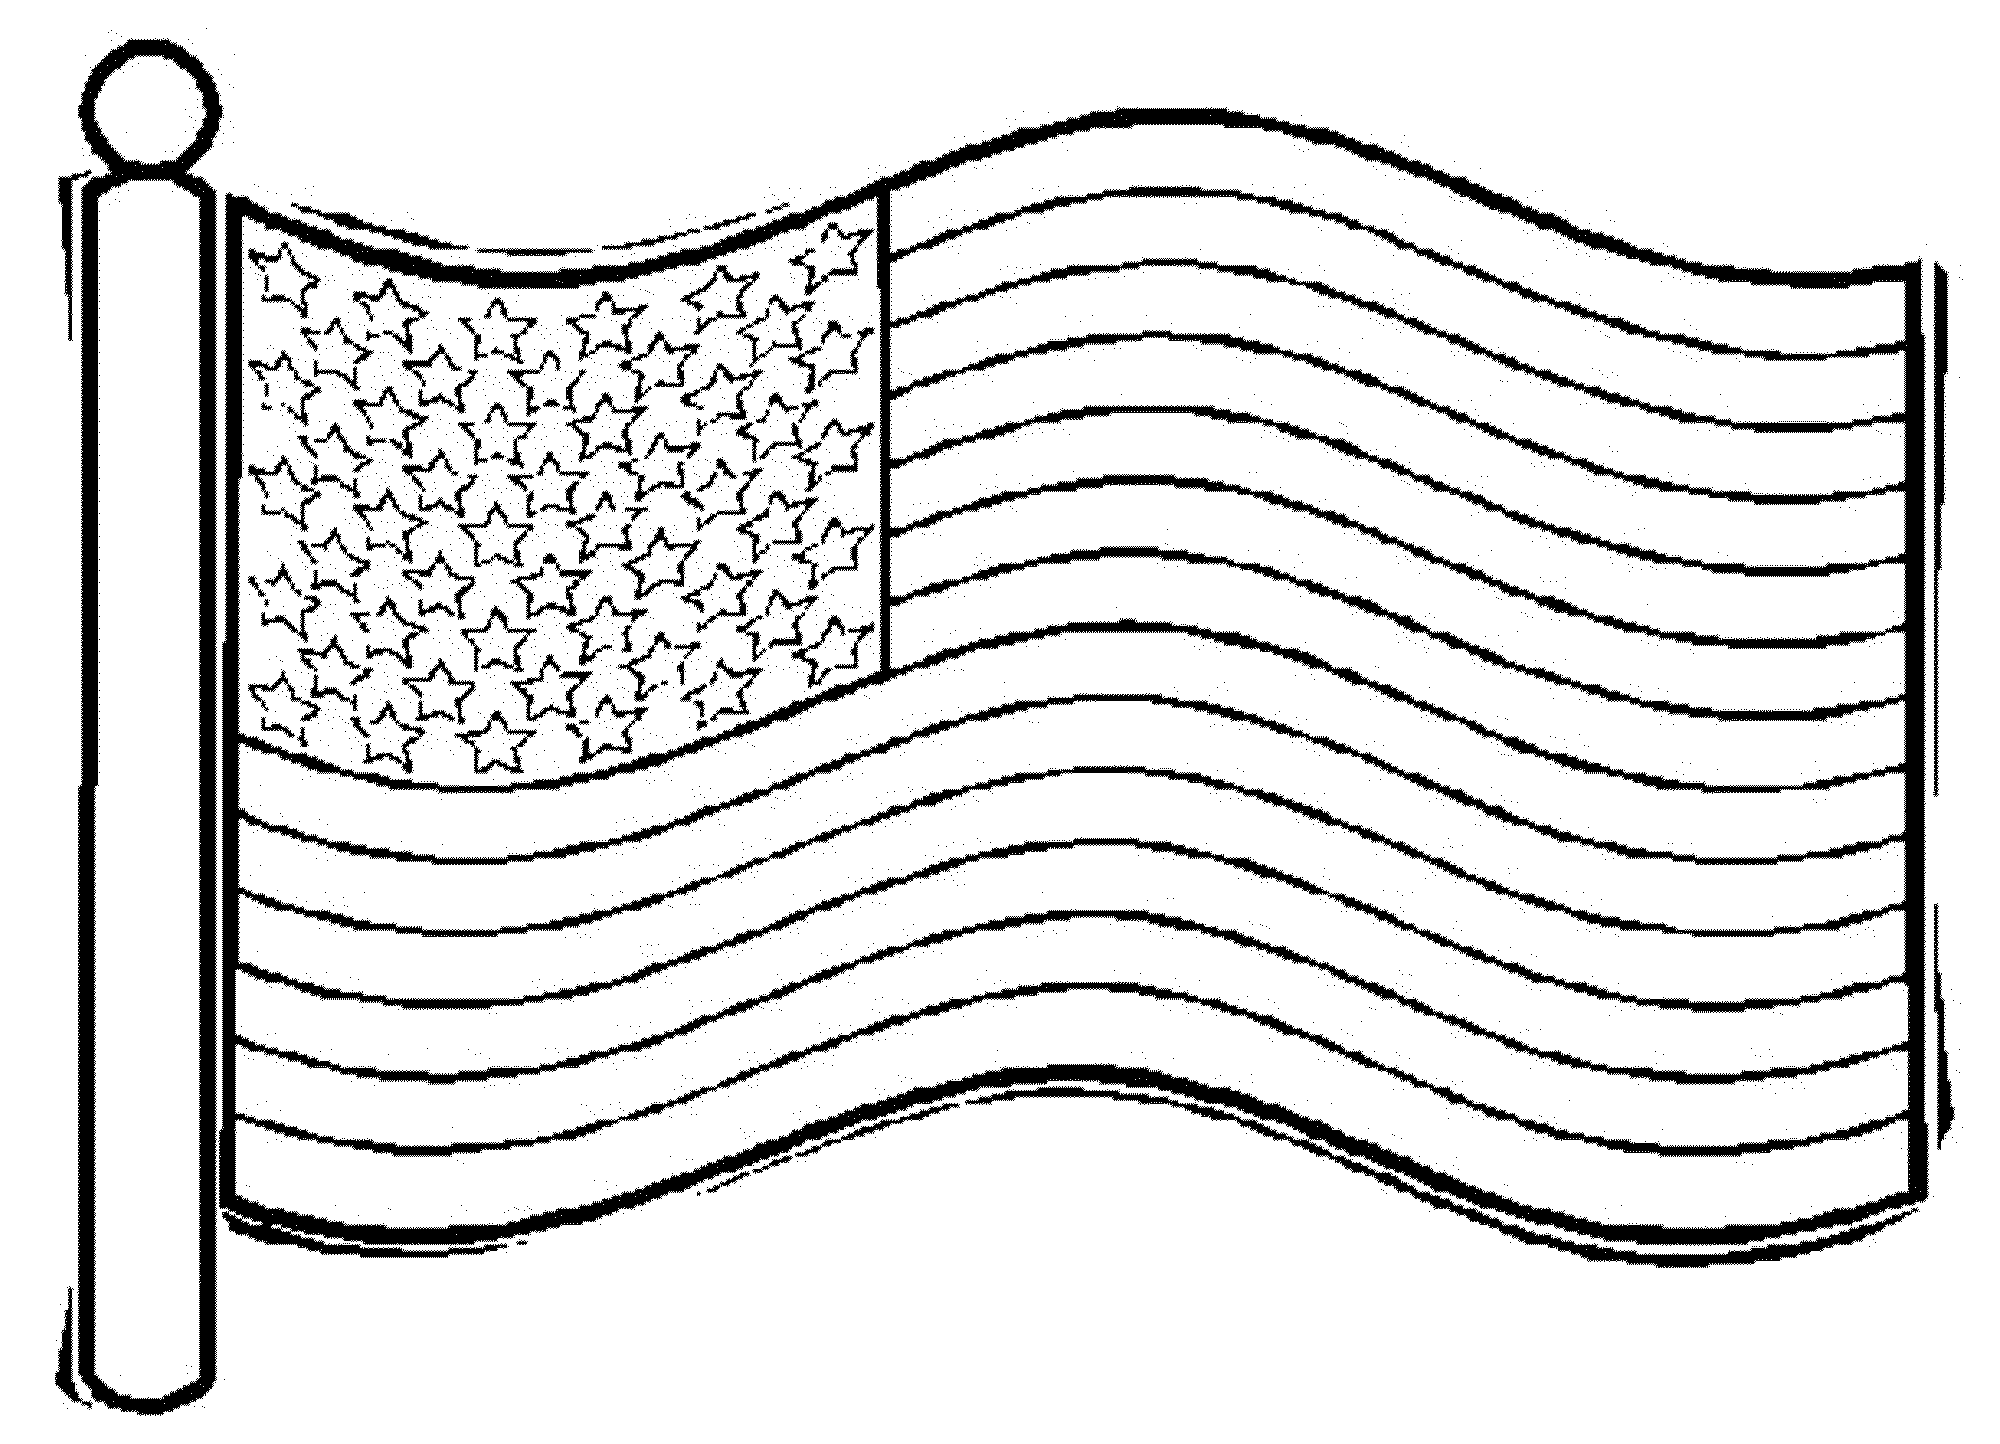 American Flag clipart original Coloring Save As page Original